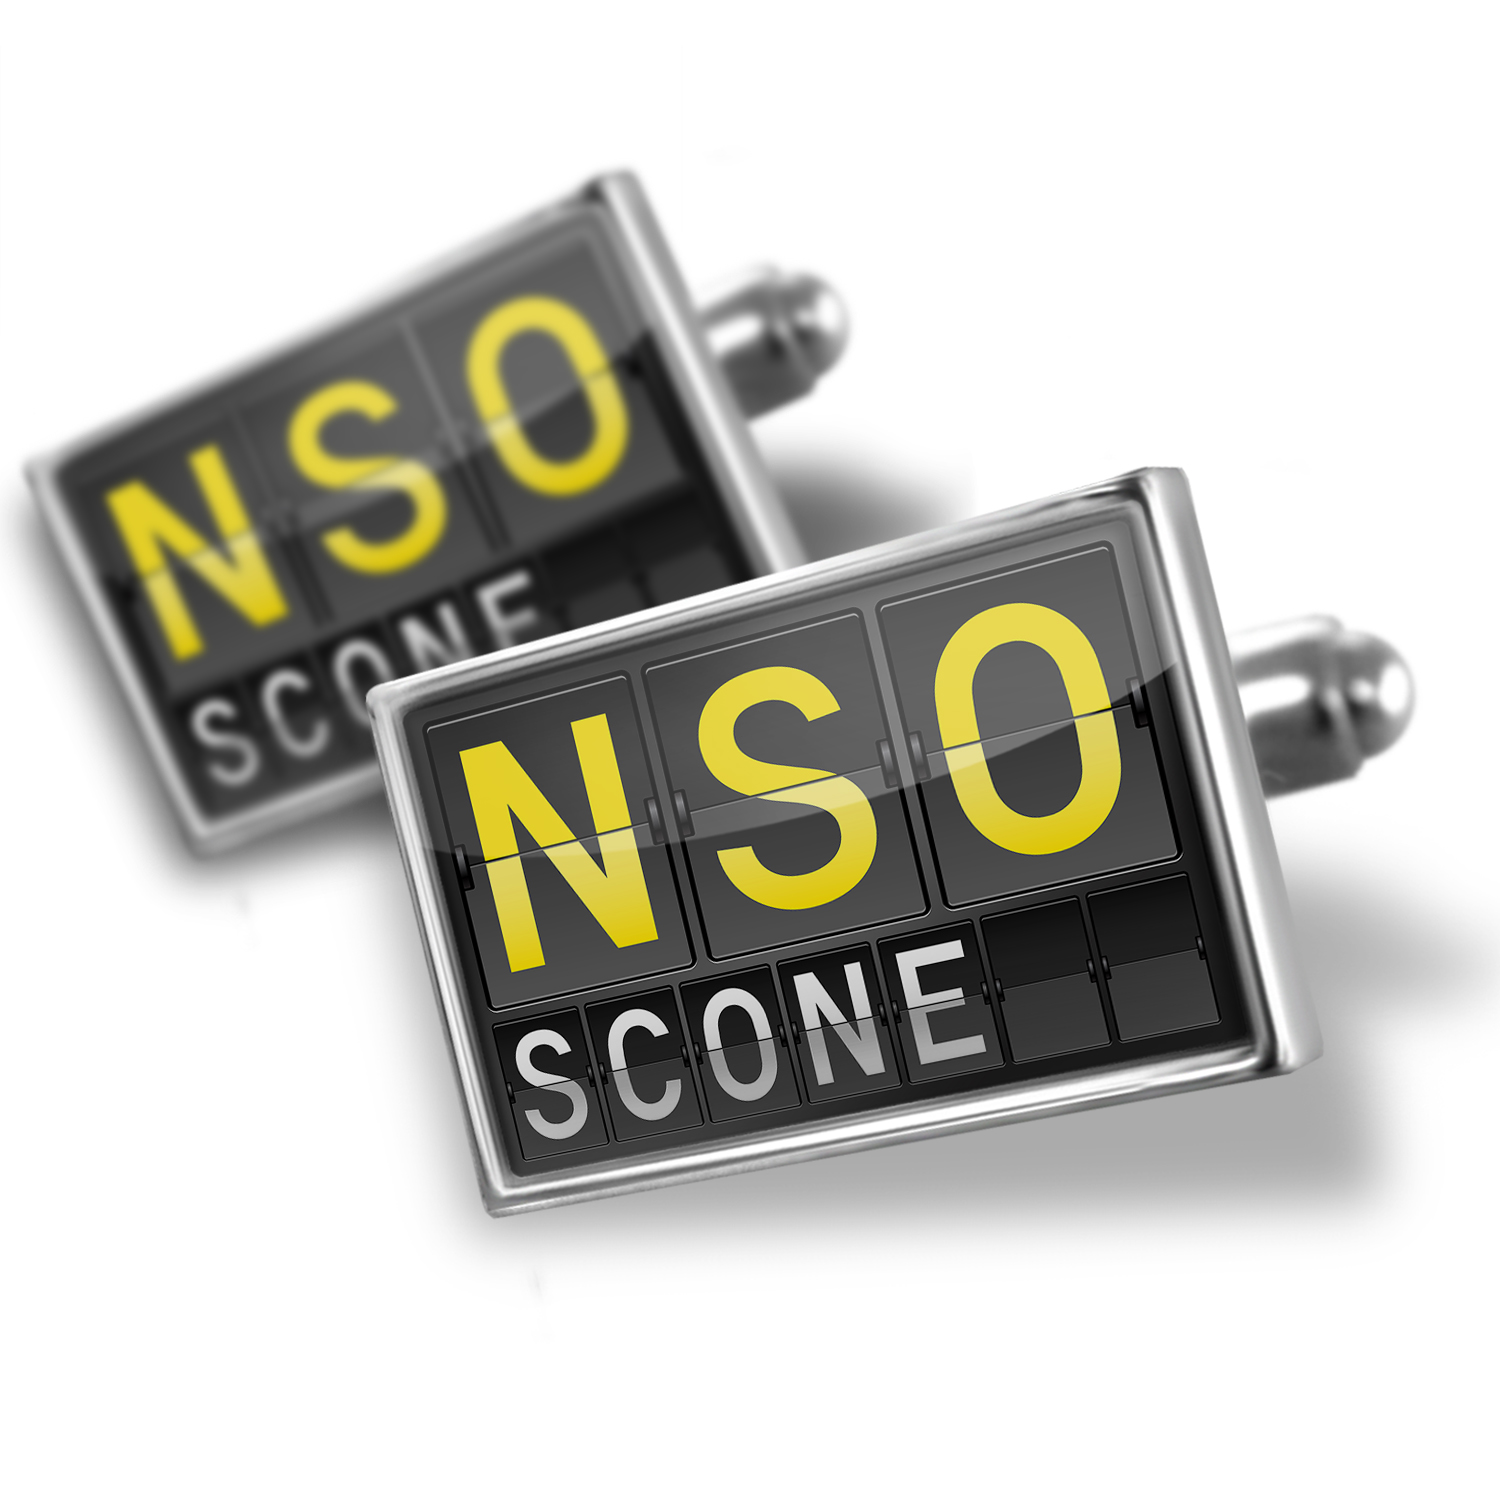 Cufflinks NSO Airport Code for Scone NEONBLOND by NEONBLOND